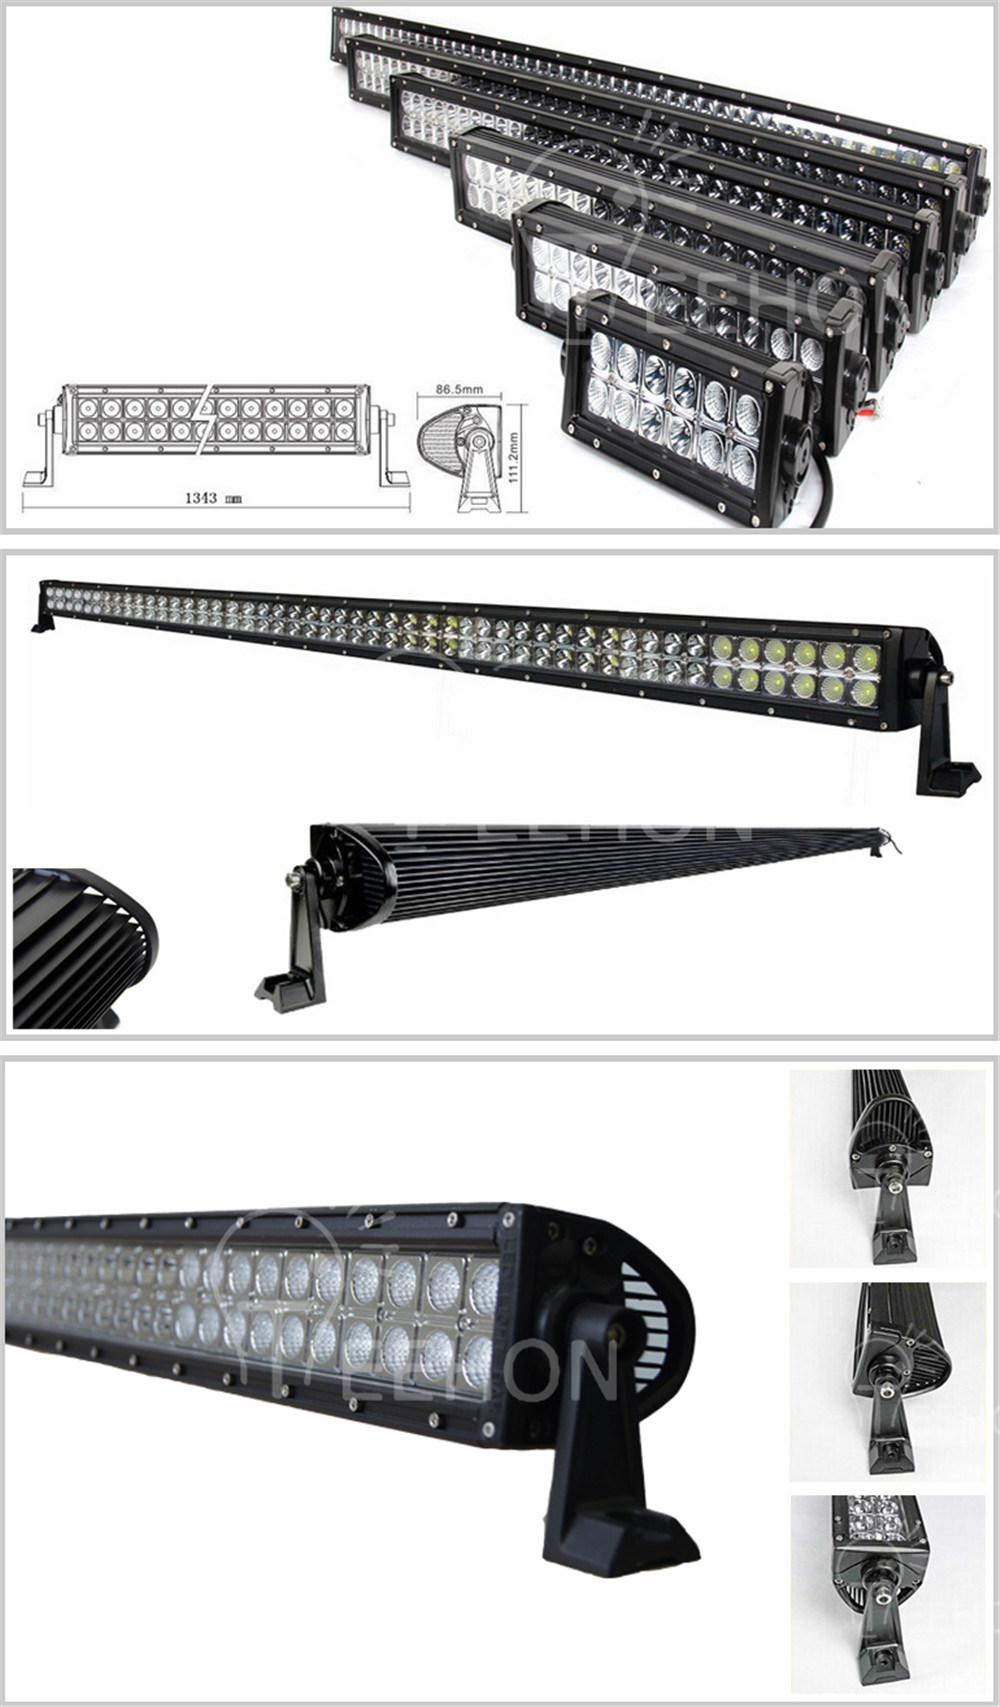 Smart expo 2018 super bright 36w epistar led light bars at aapex led lighting bar pictures aloadofball Image collections